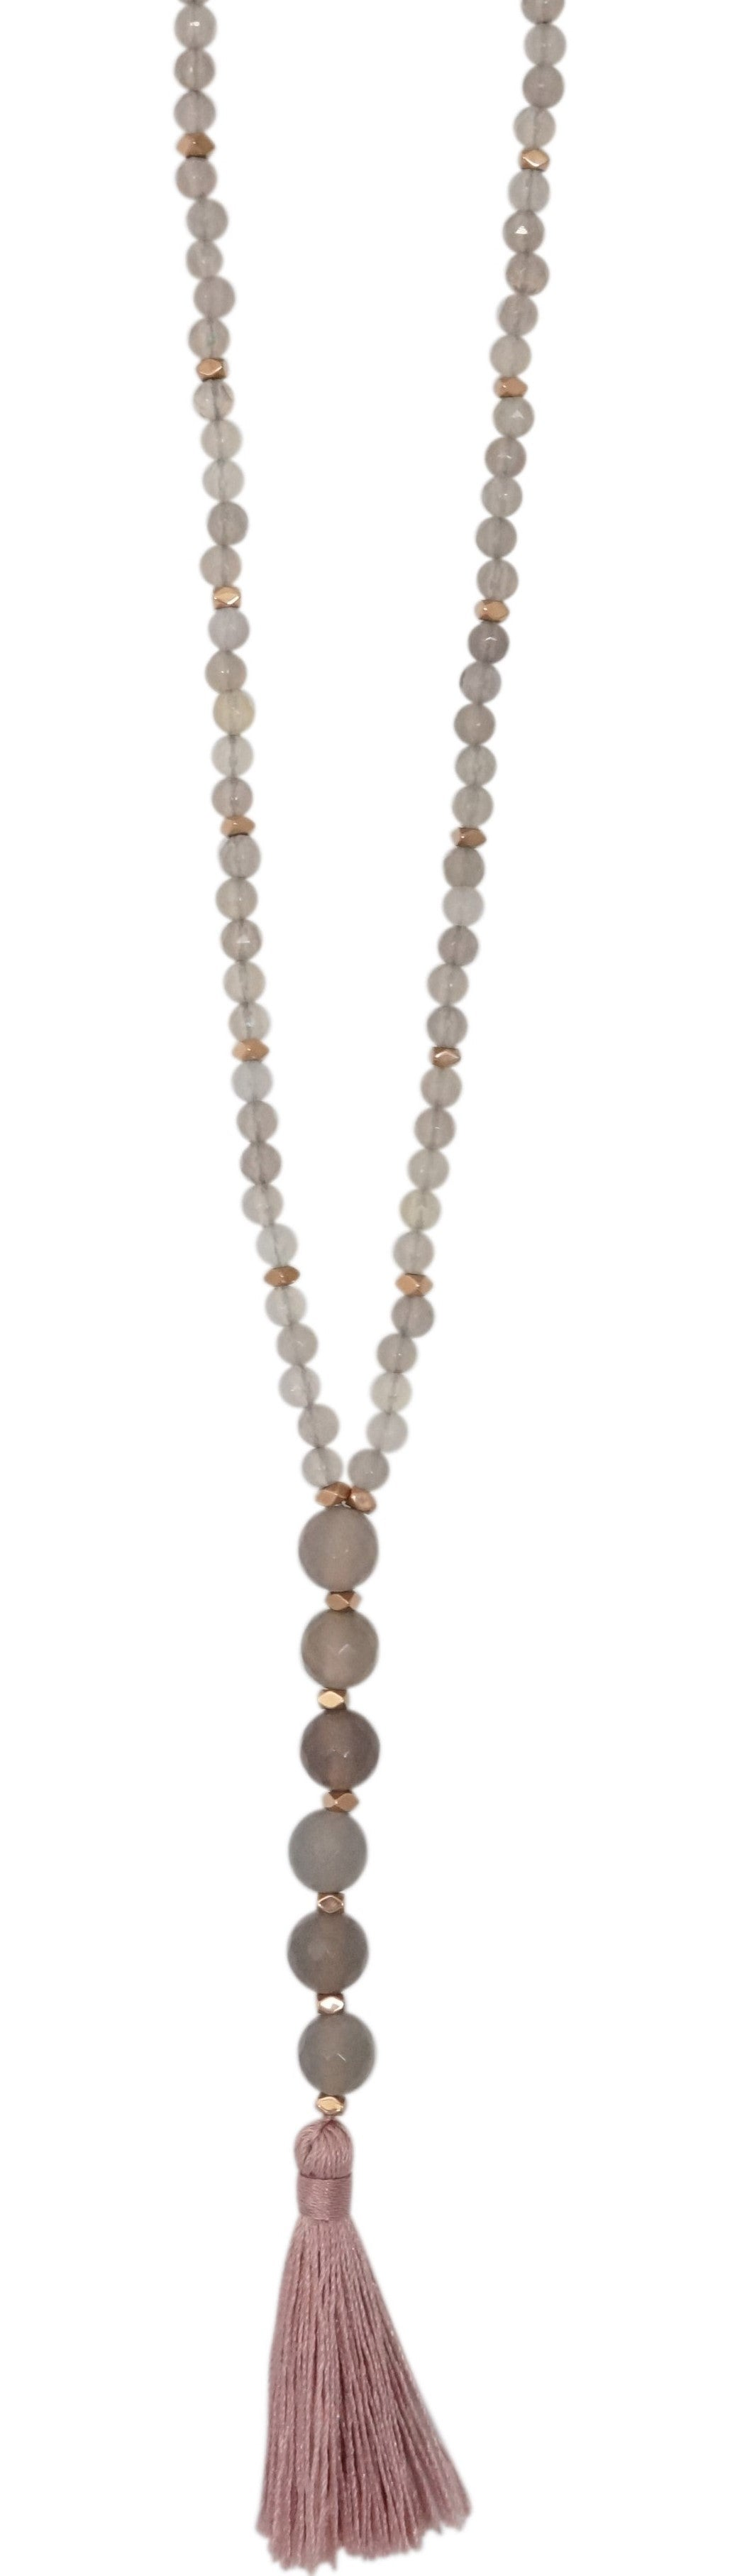 Calming Necklace - Carolyn Hearn Designs